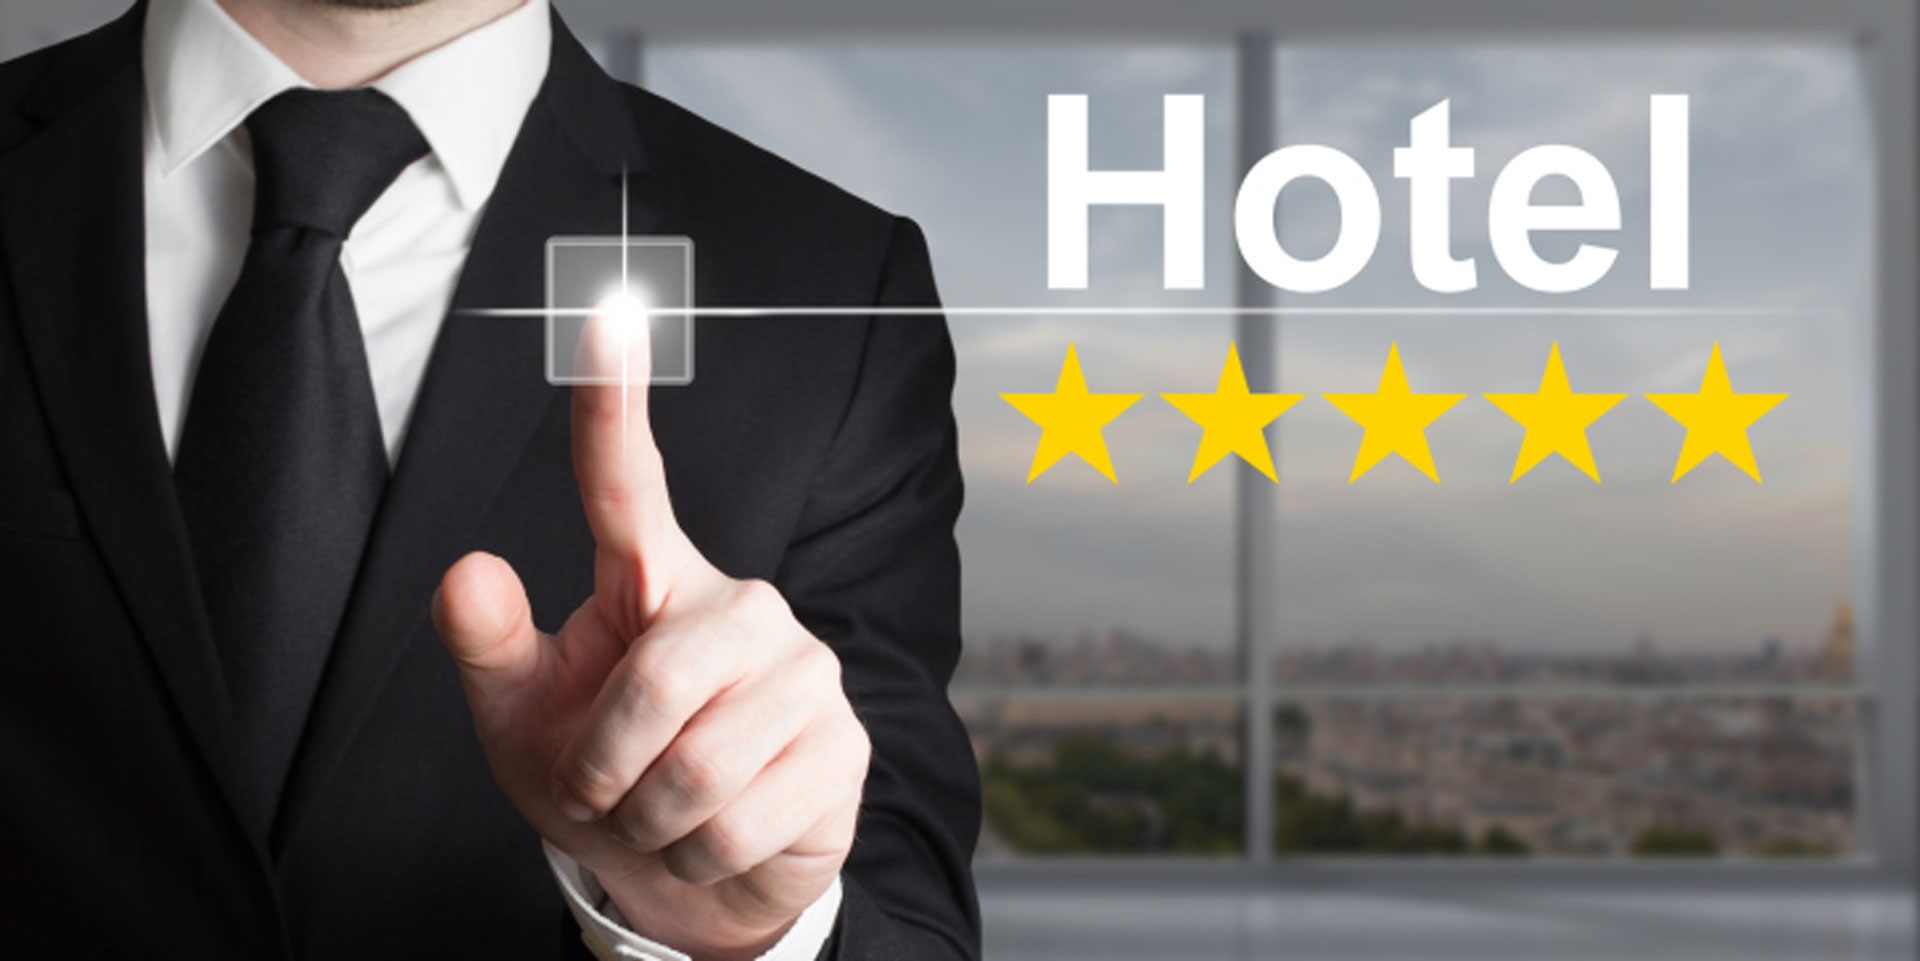 The hotel guest rating leaders are two familiar brands [download chain report]